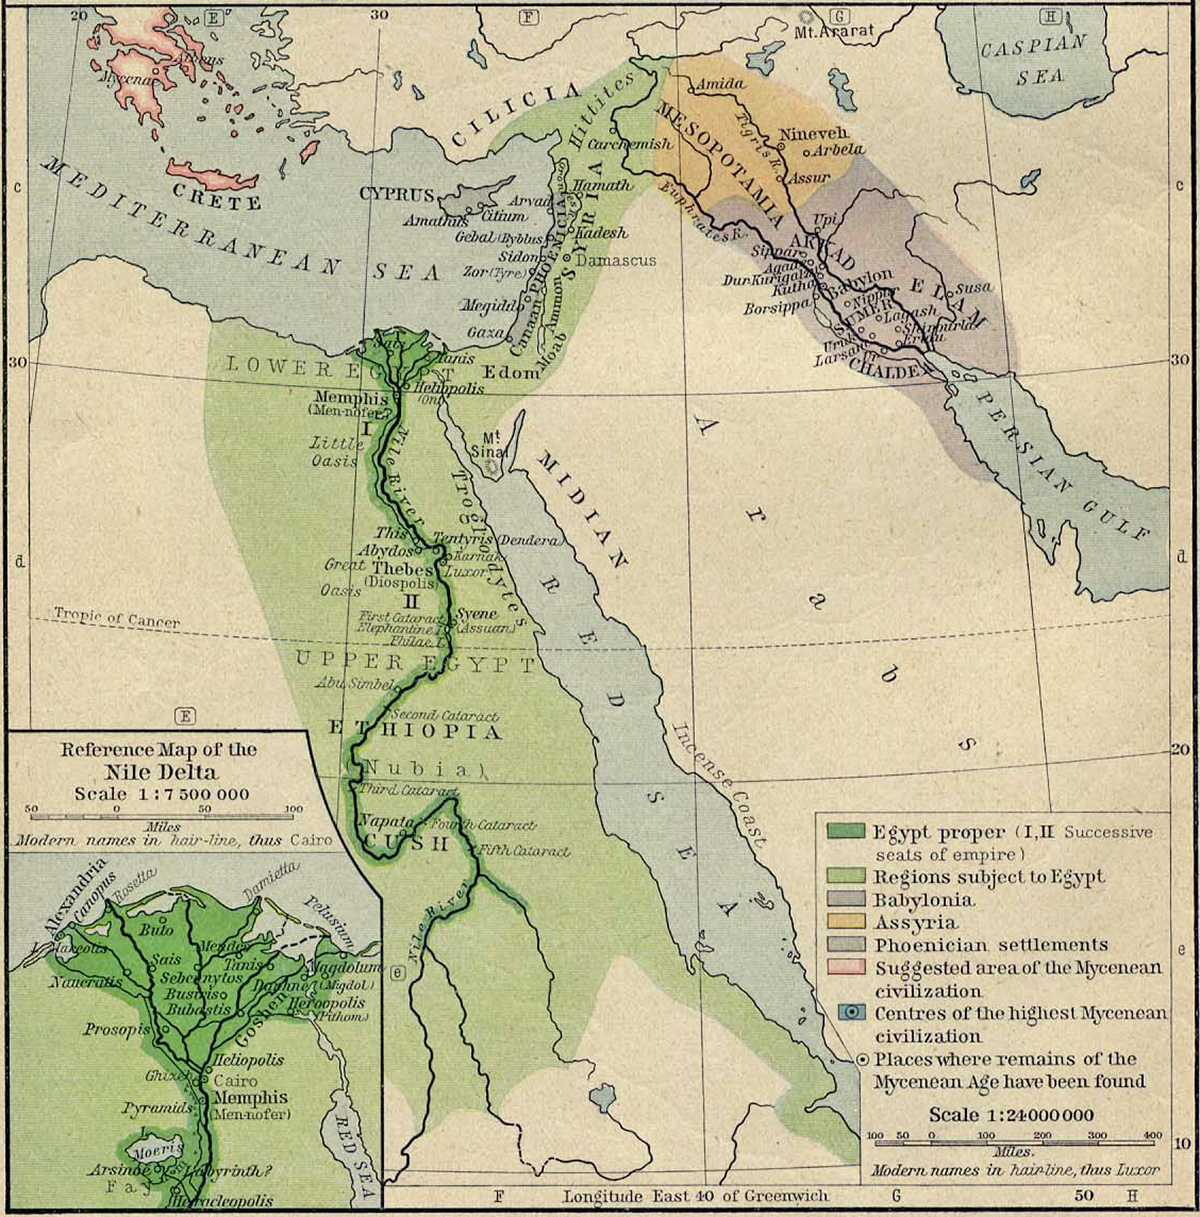 Map of Egypt Syria and Mesopotamia 1450 BC